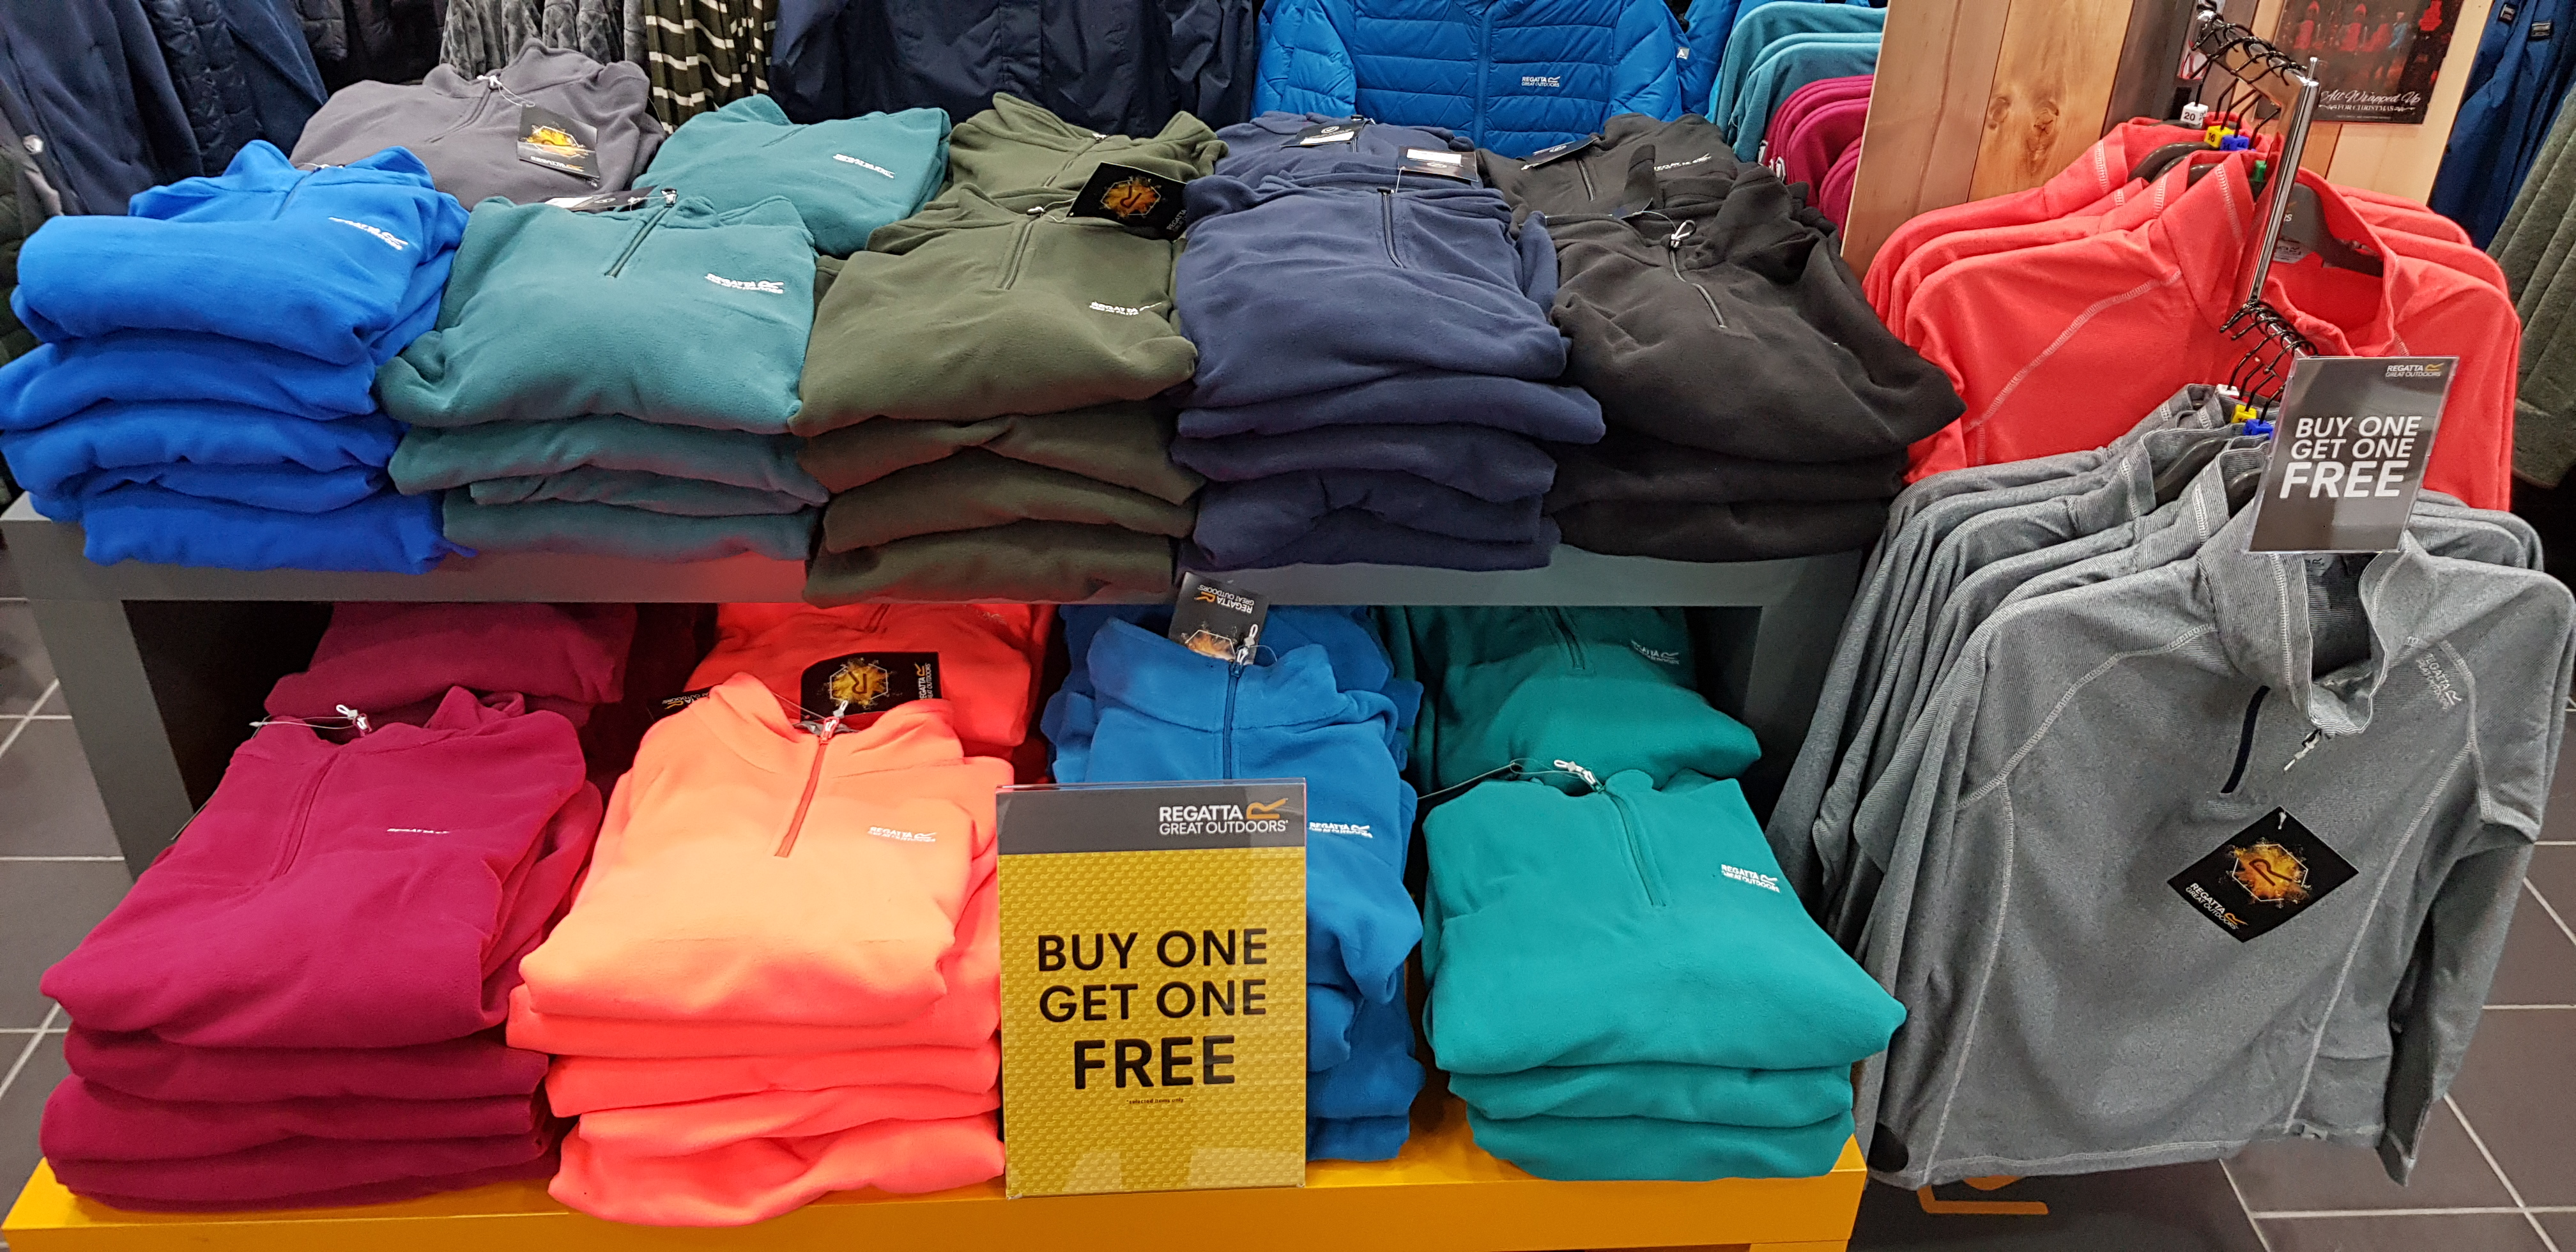 3 for 2 on Selected Fleece Collections at Regatta!